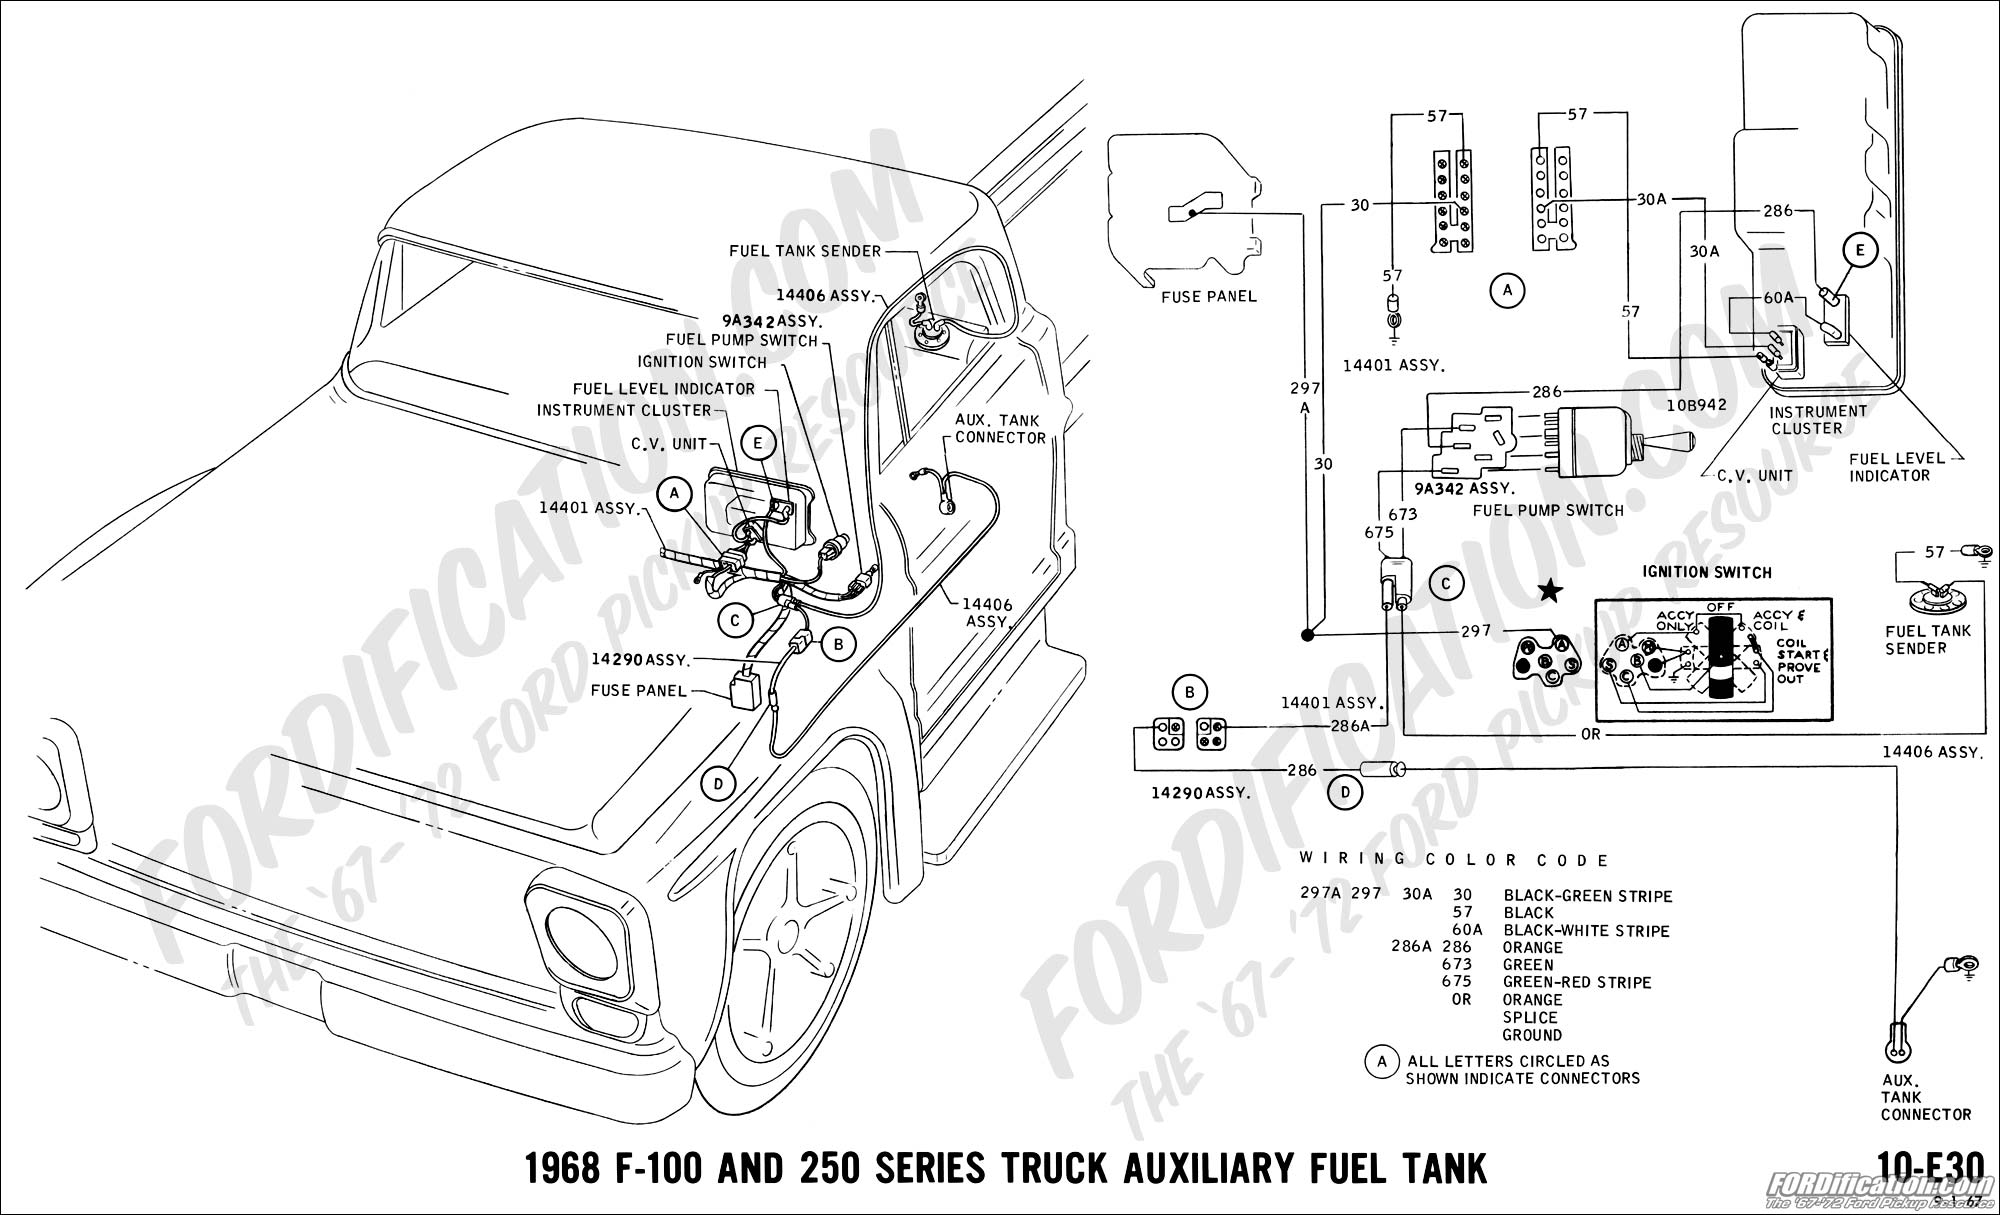 Aux Fuse Box Diagram 2006 F750 Fuel Tank Wiring Services Images Gallery Ford Truck Technical Drawings And Schematics Section H Rh Fordification Com